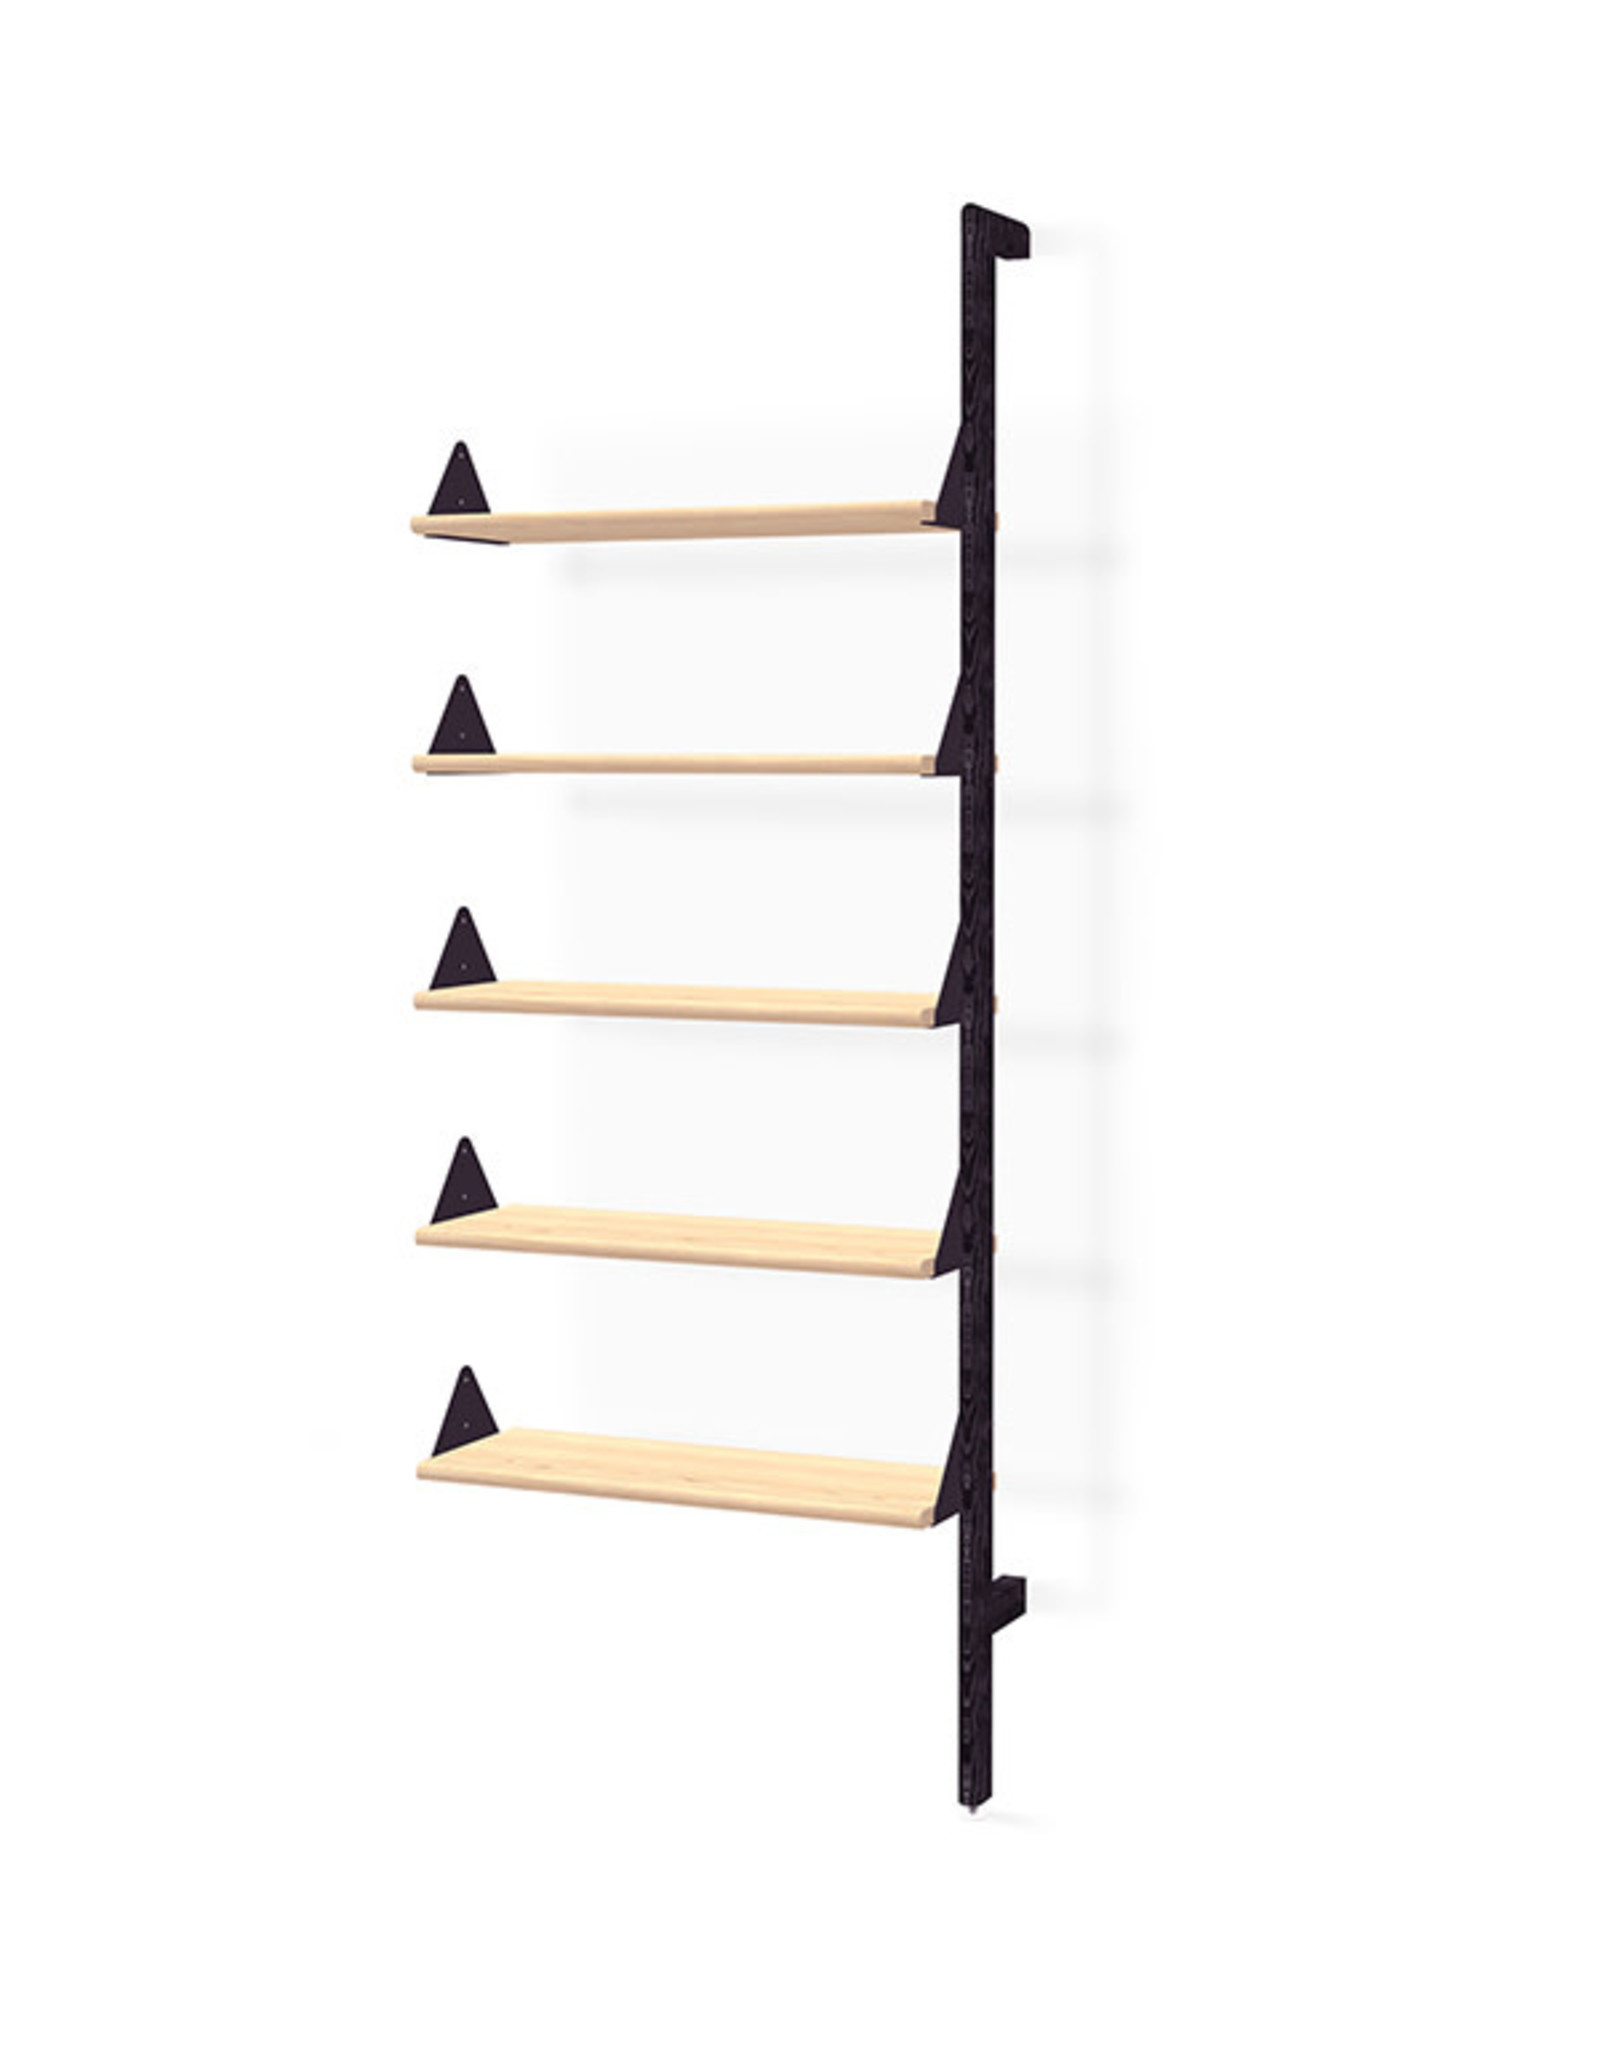 Gus* Modern Branch Shelving Unit Add-on